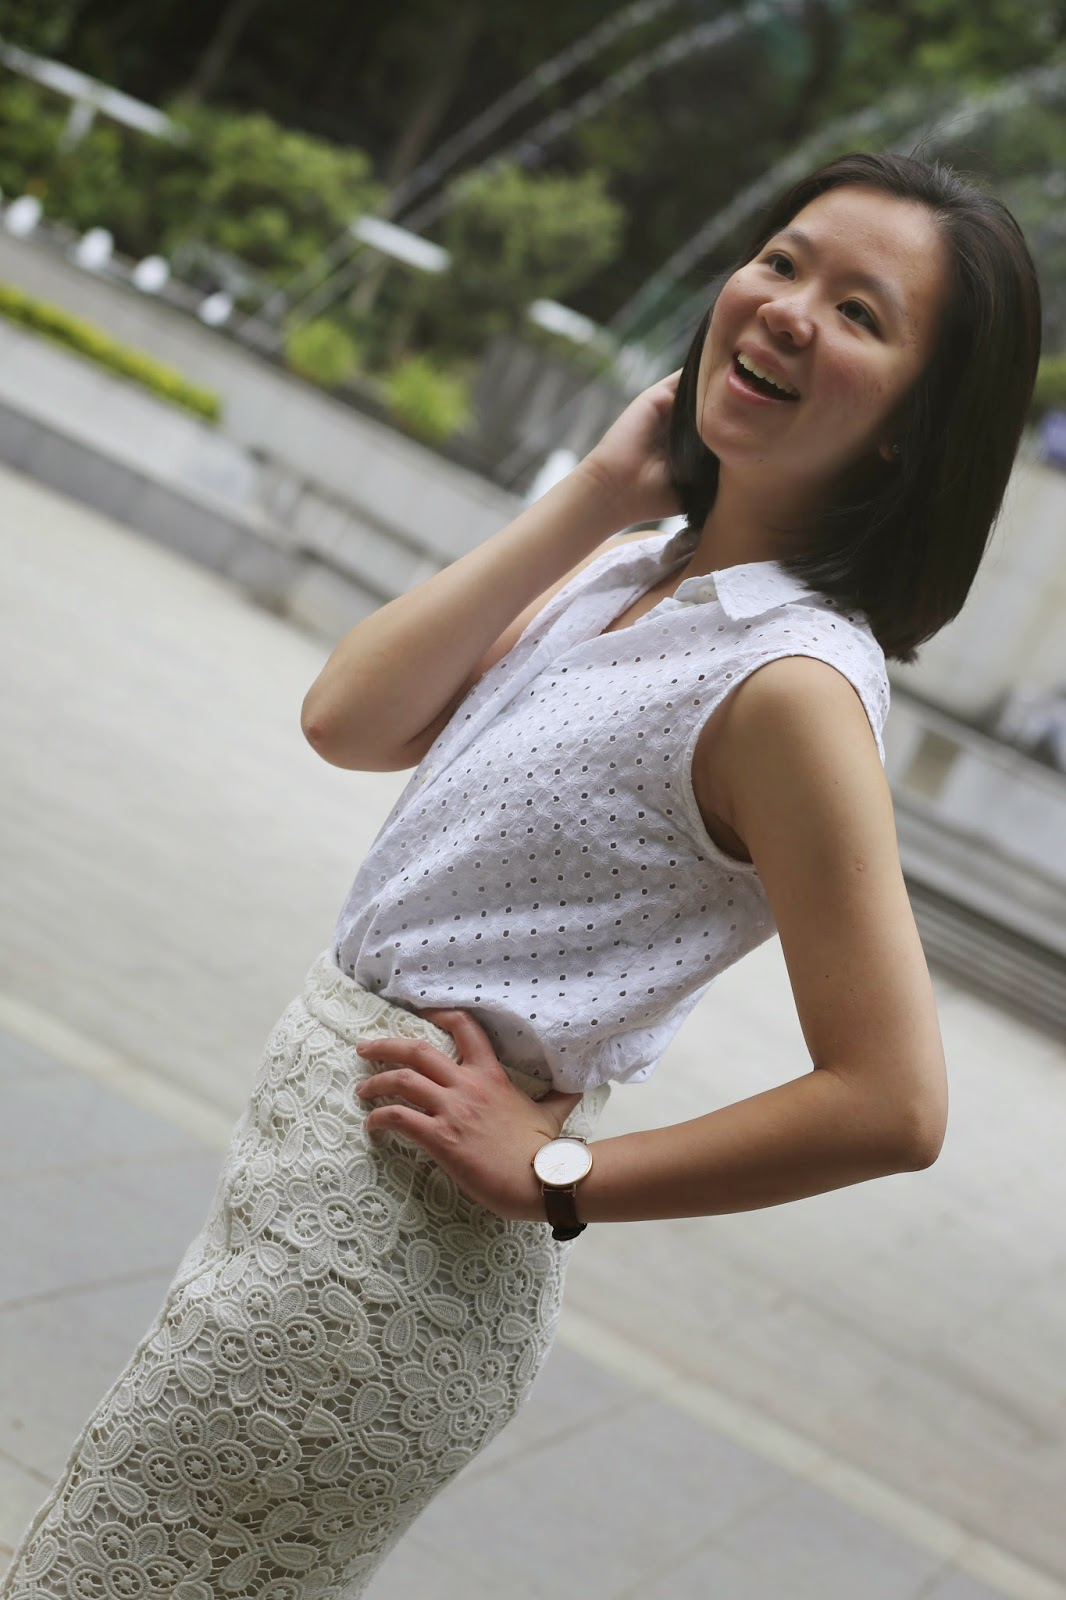 corporate fashion blog, what to wear to work, business casual, finance fashion blog, that working life, white lace pencil skirt, white eyelet top